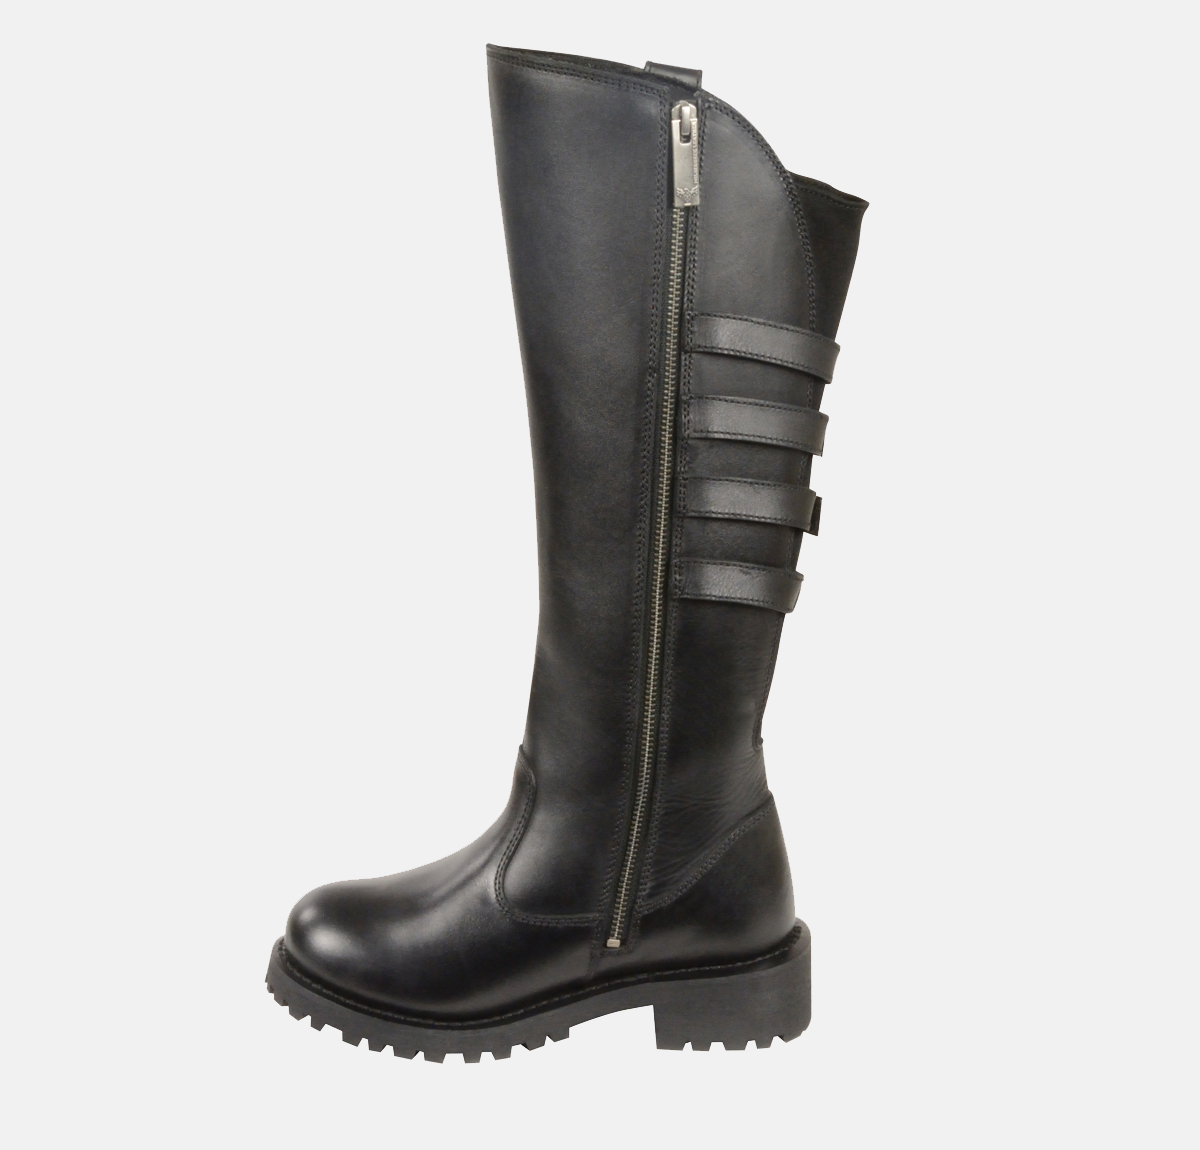 Womens Black Leather Biker Boots